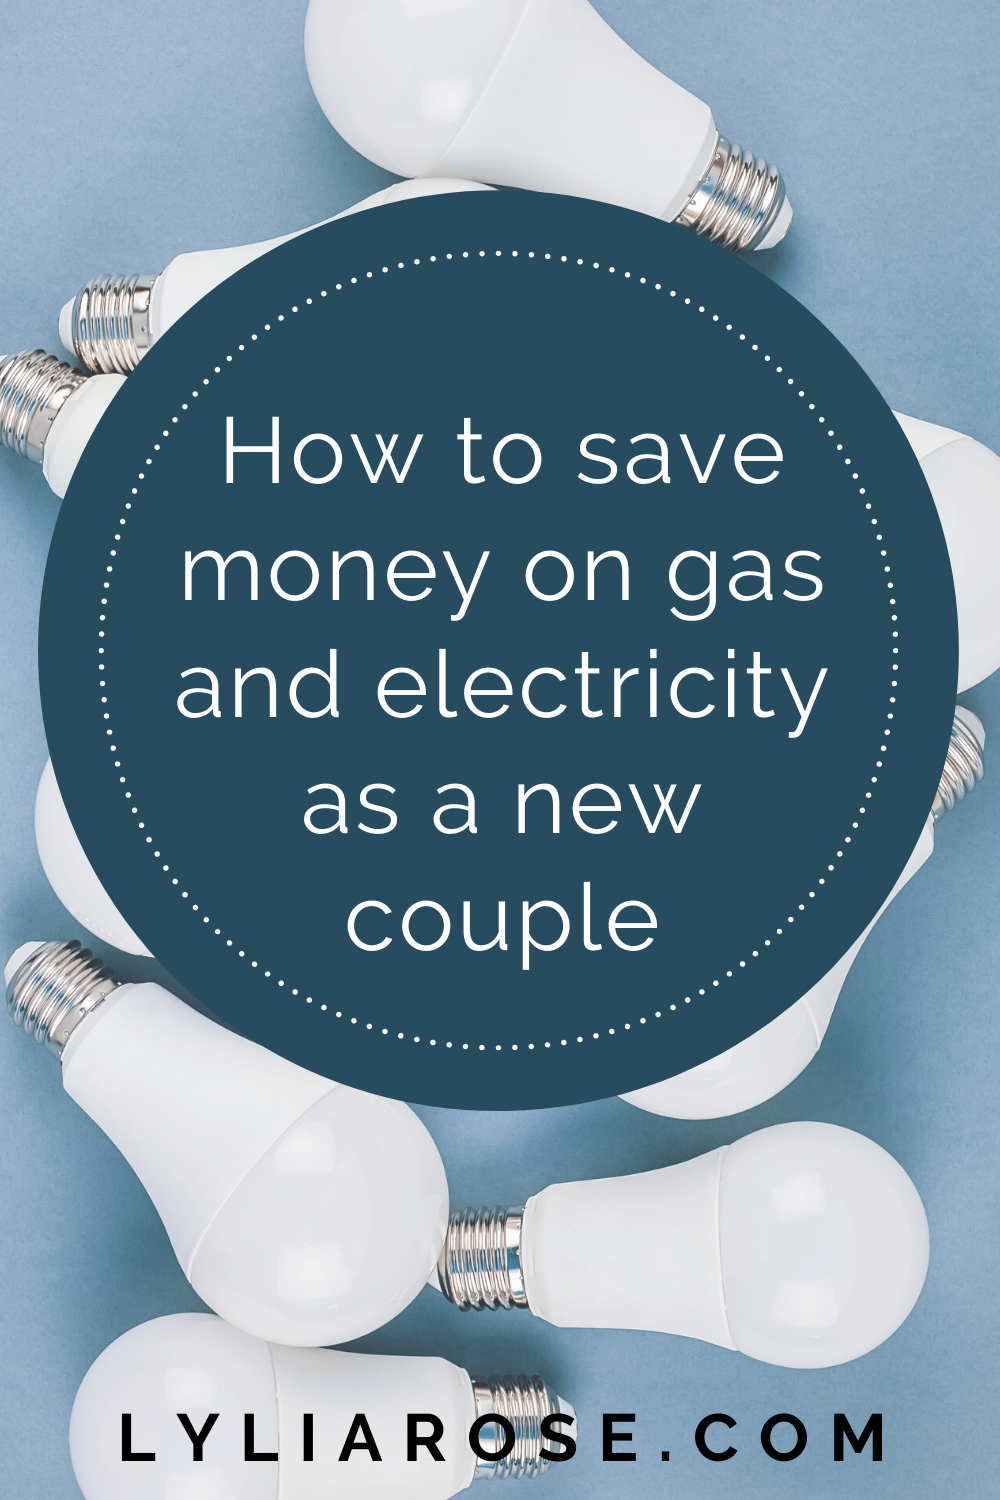 How to save money on gas and electricity as a new couple